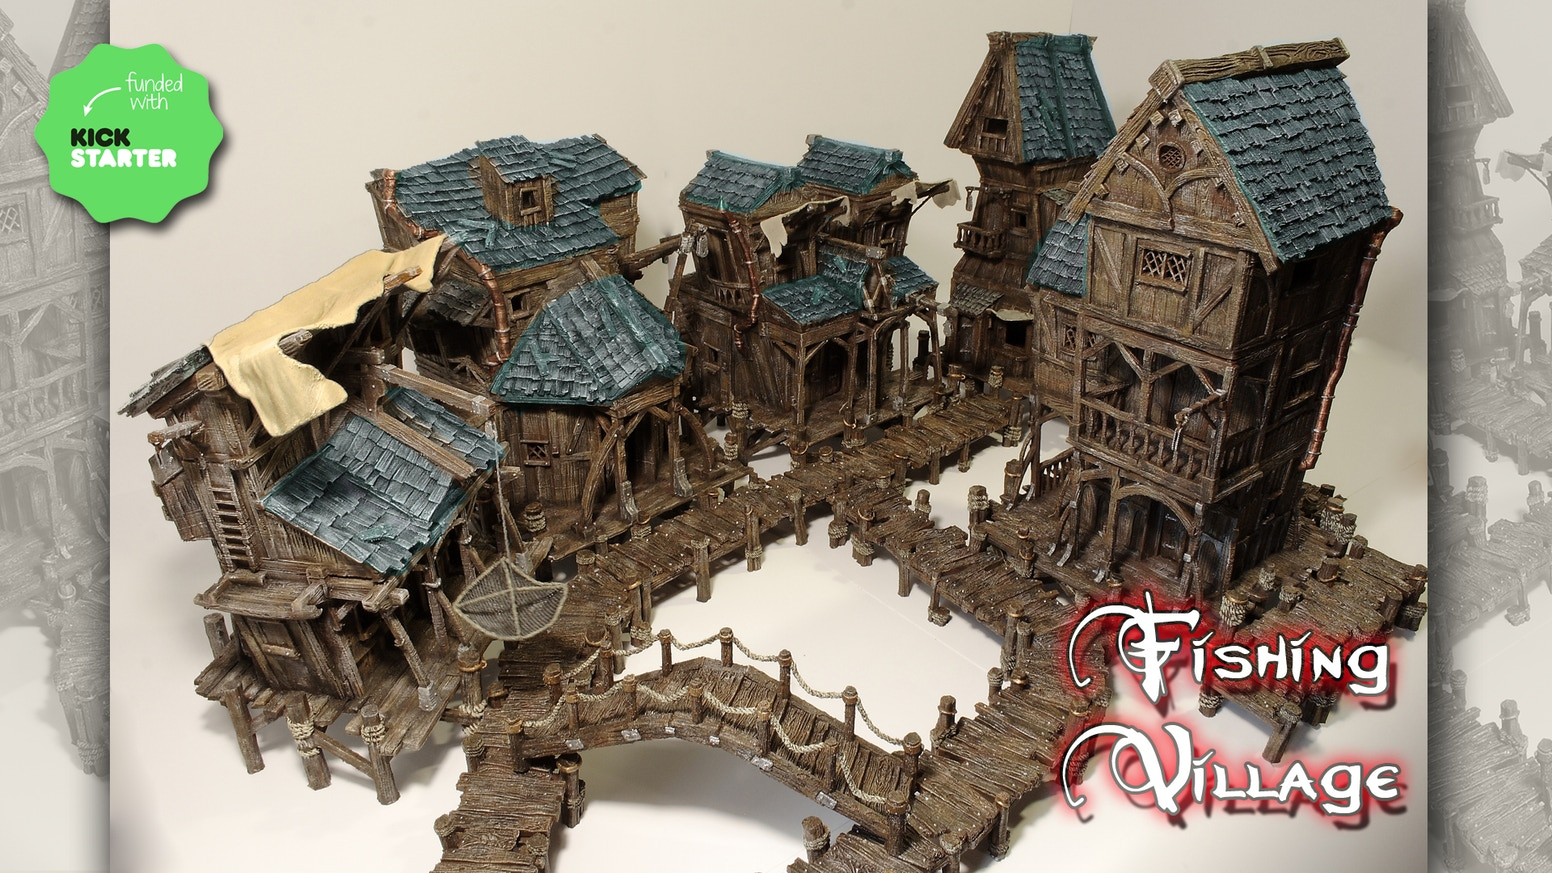 Stl files for 3d printing for tabletop games.